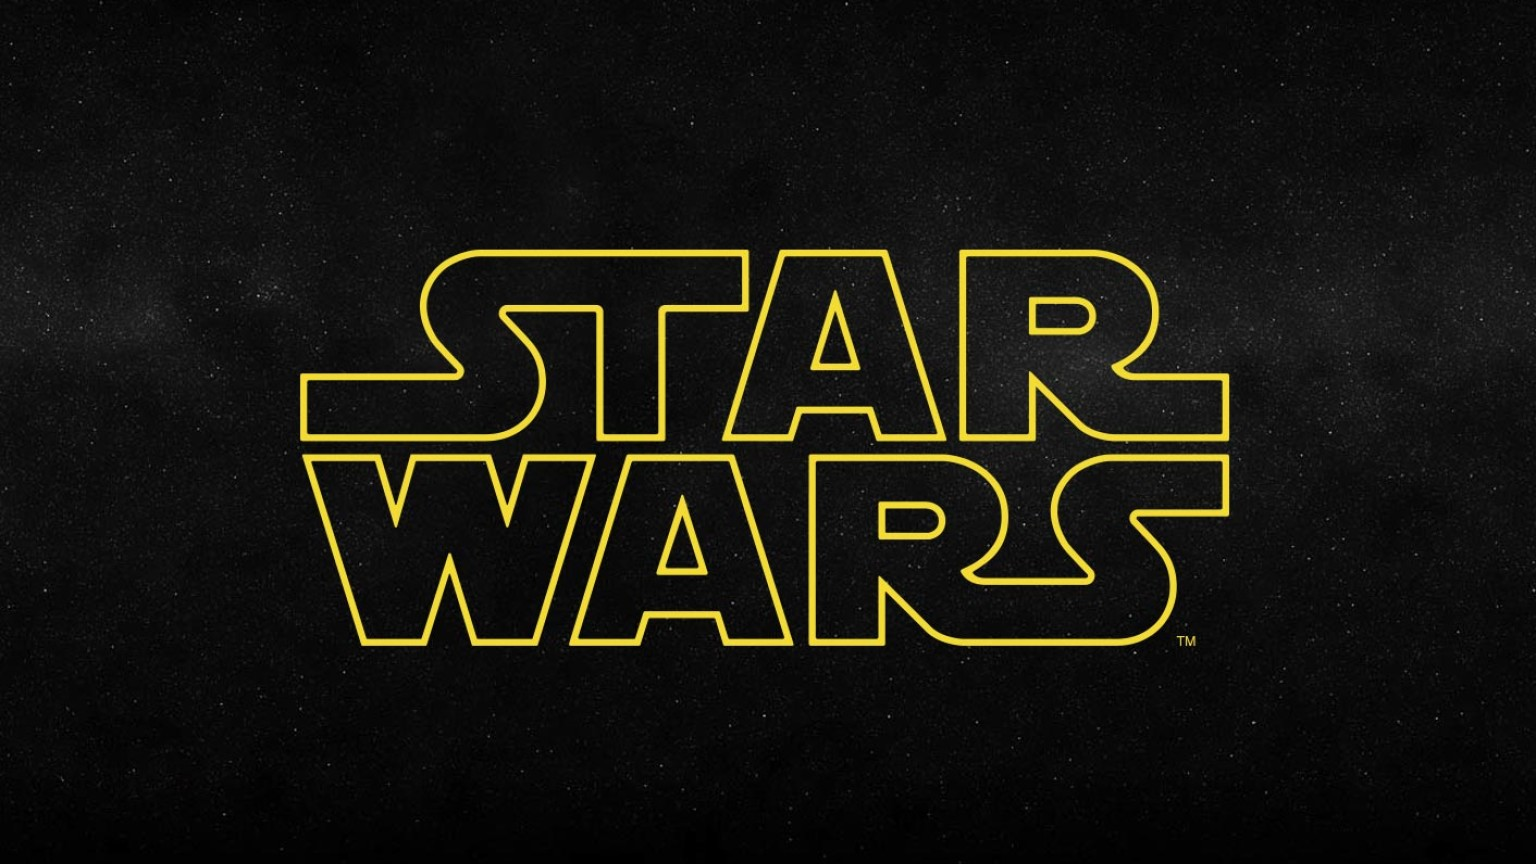 Star Wars Episode VIII Delayed